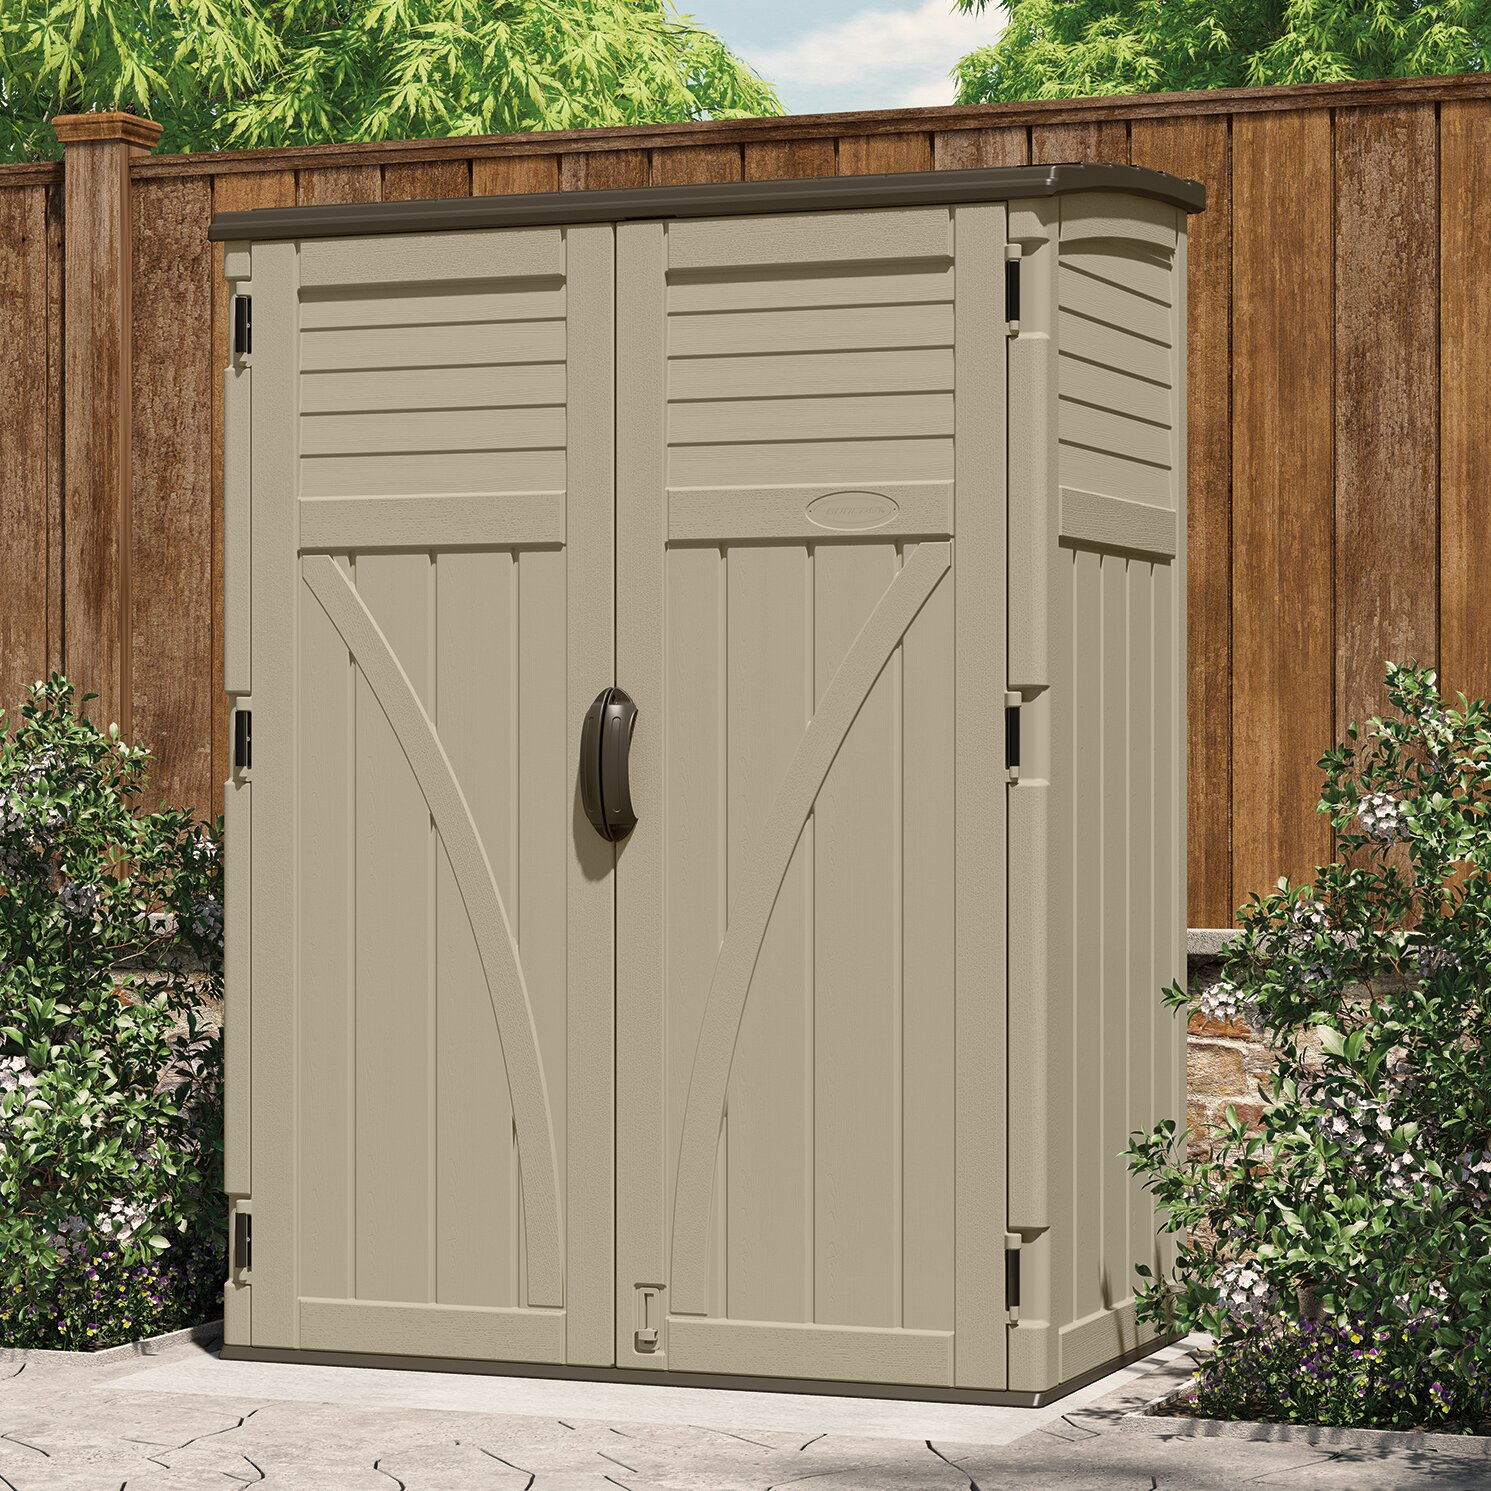 Suncast 4 4 ft w x 2 7 ft d plastic storage shed for Garden shed 4 x 2